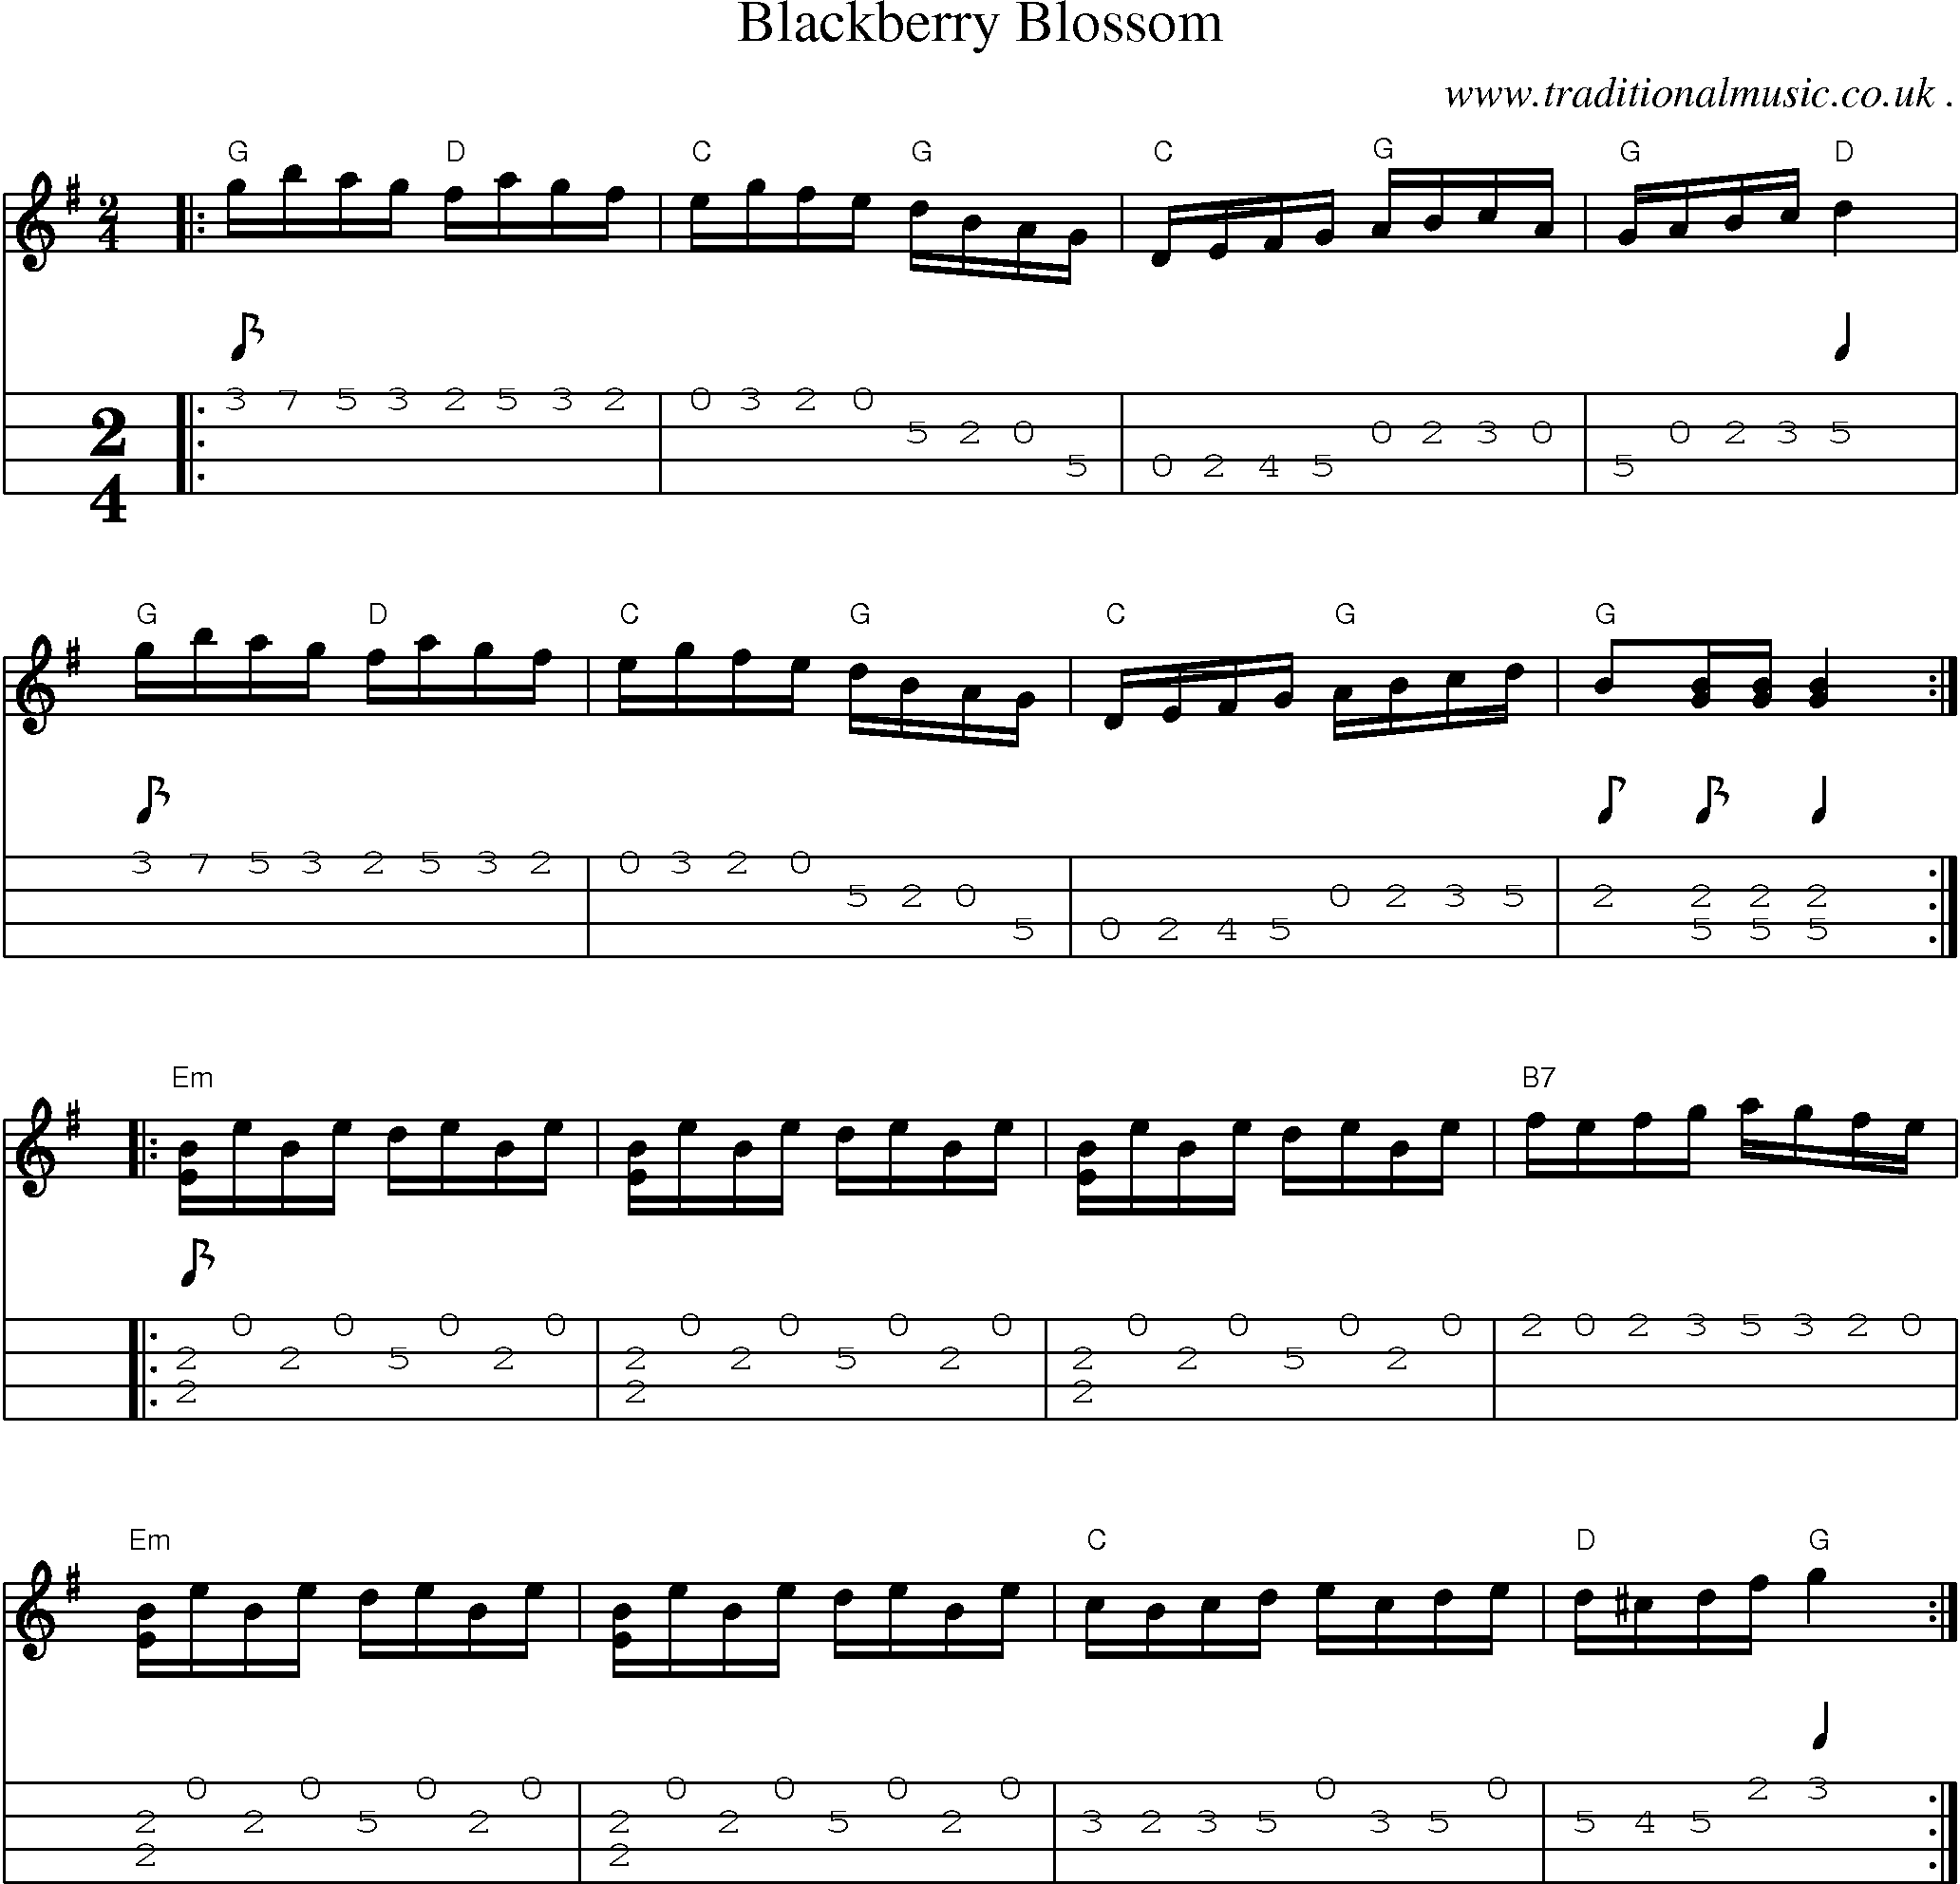 American Old-time music, Scores and Tabs for Mandolin - Blackberry Blossom